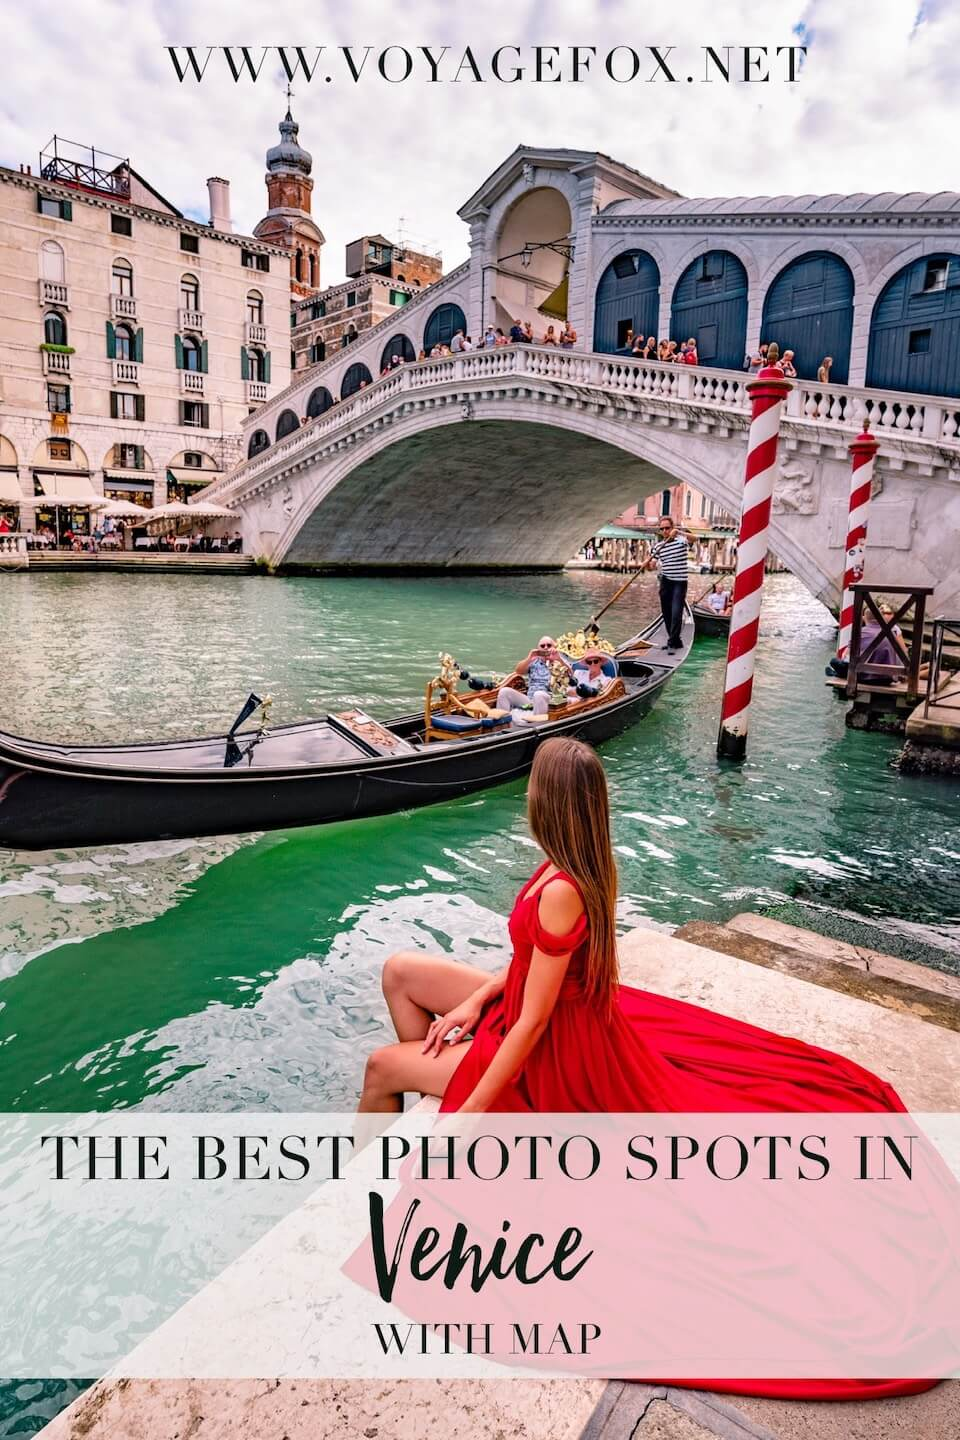 the best photo spots in venice